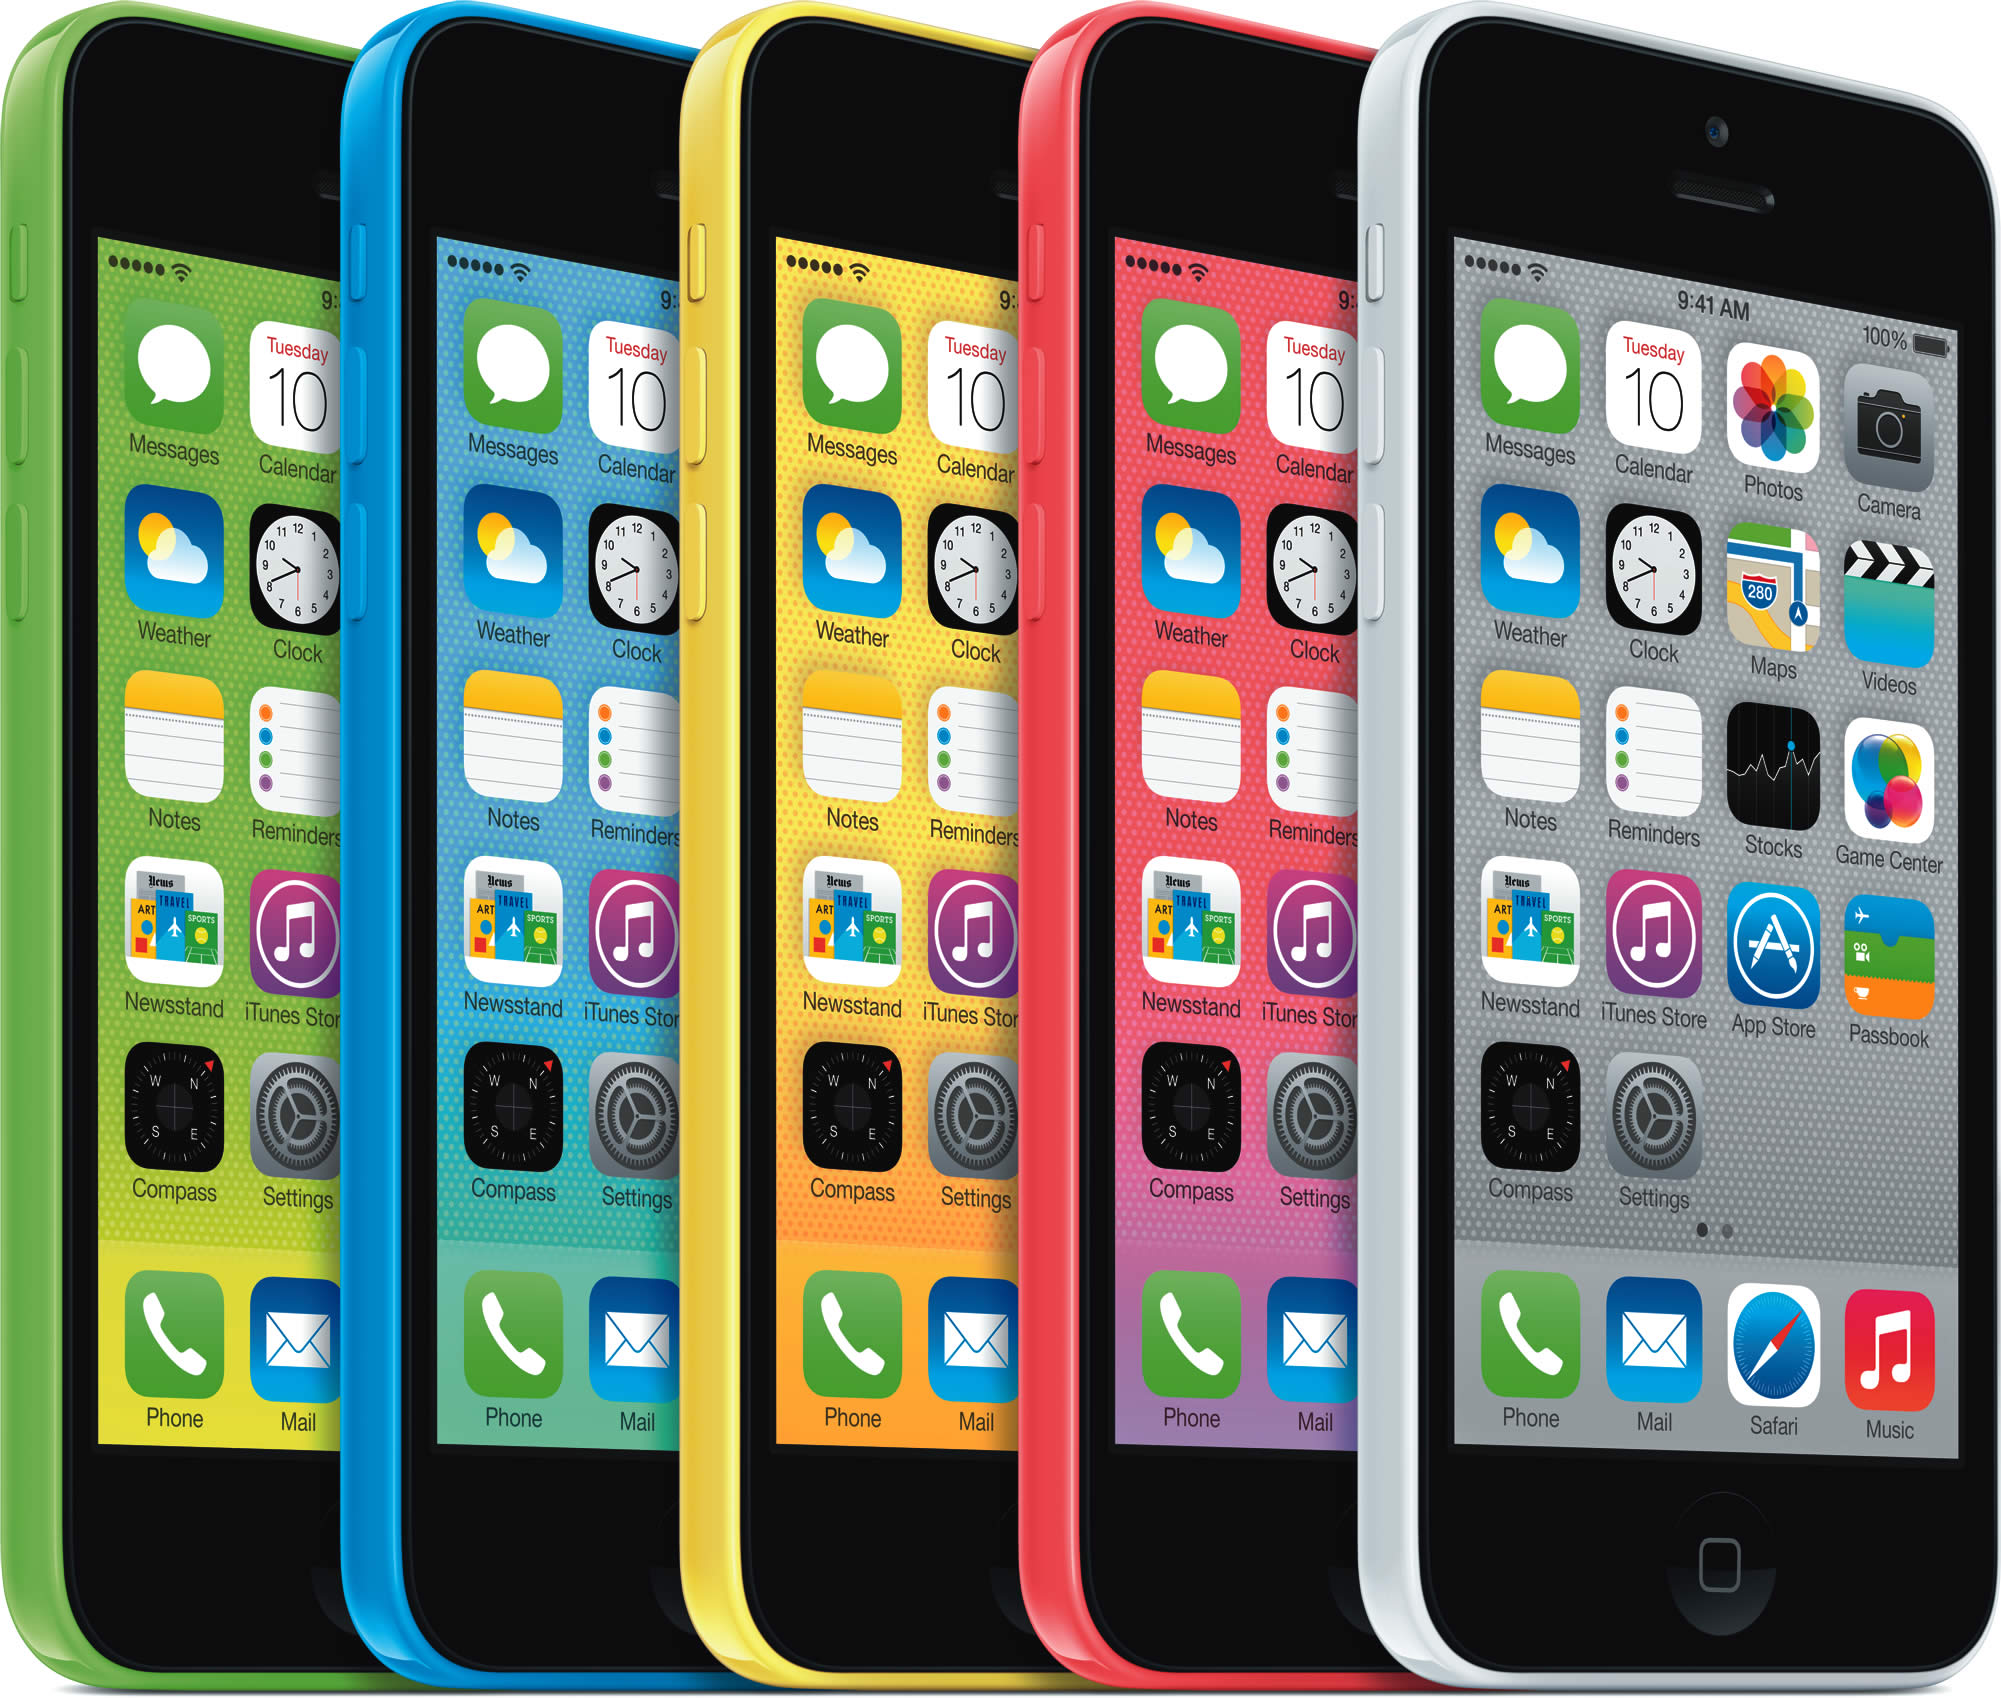 iphone 5c no contract apple iphone 5c no contract pre orders now open 13 sep 2013 3167